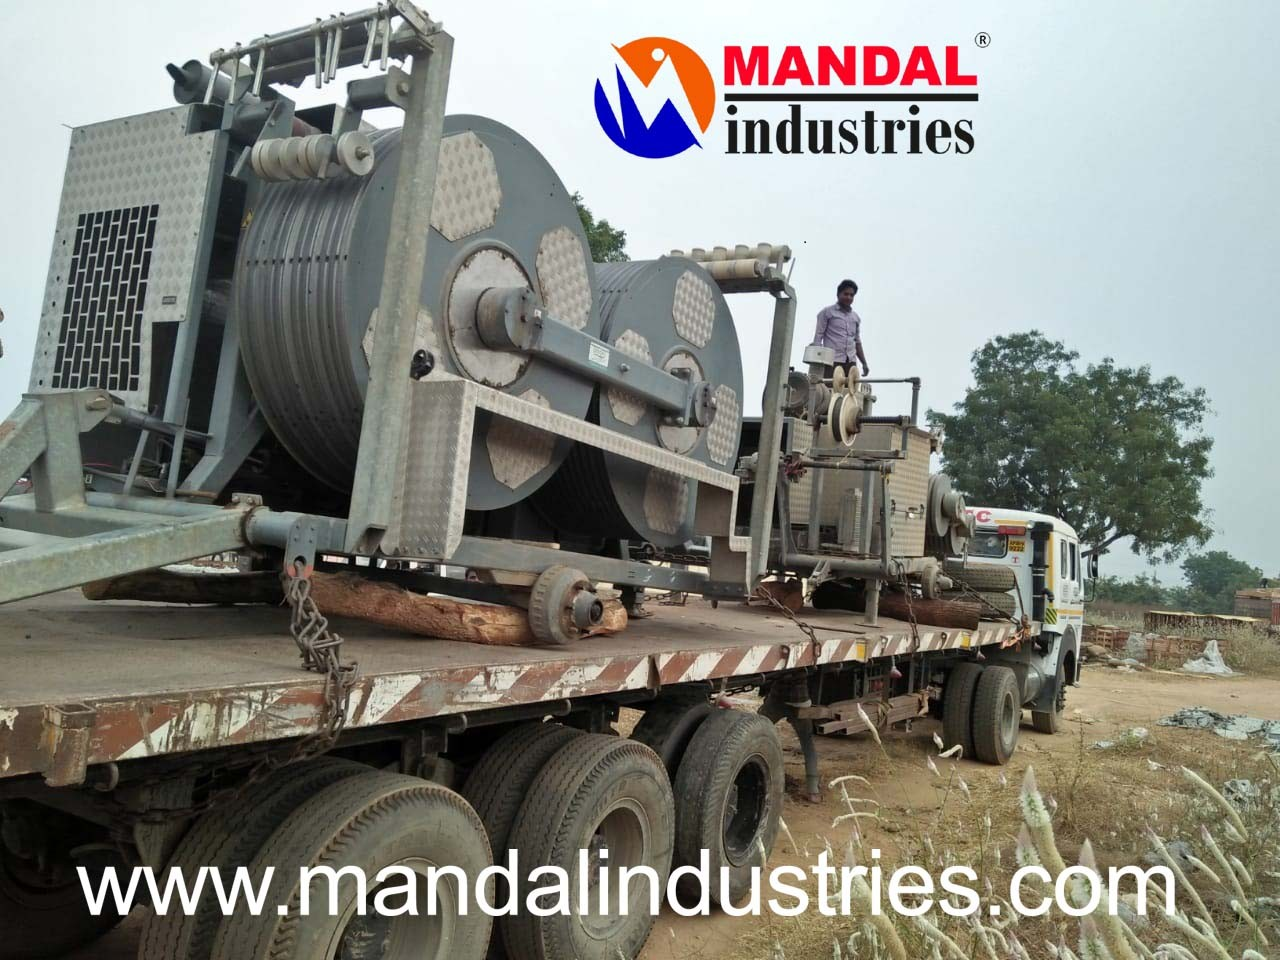 Mandal Industries Pvt. Ltd.